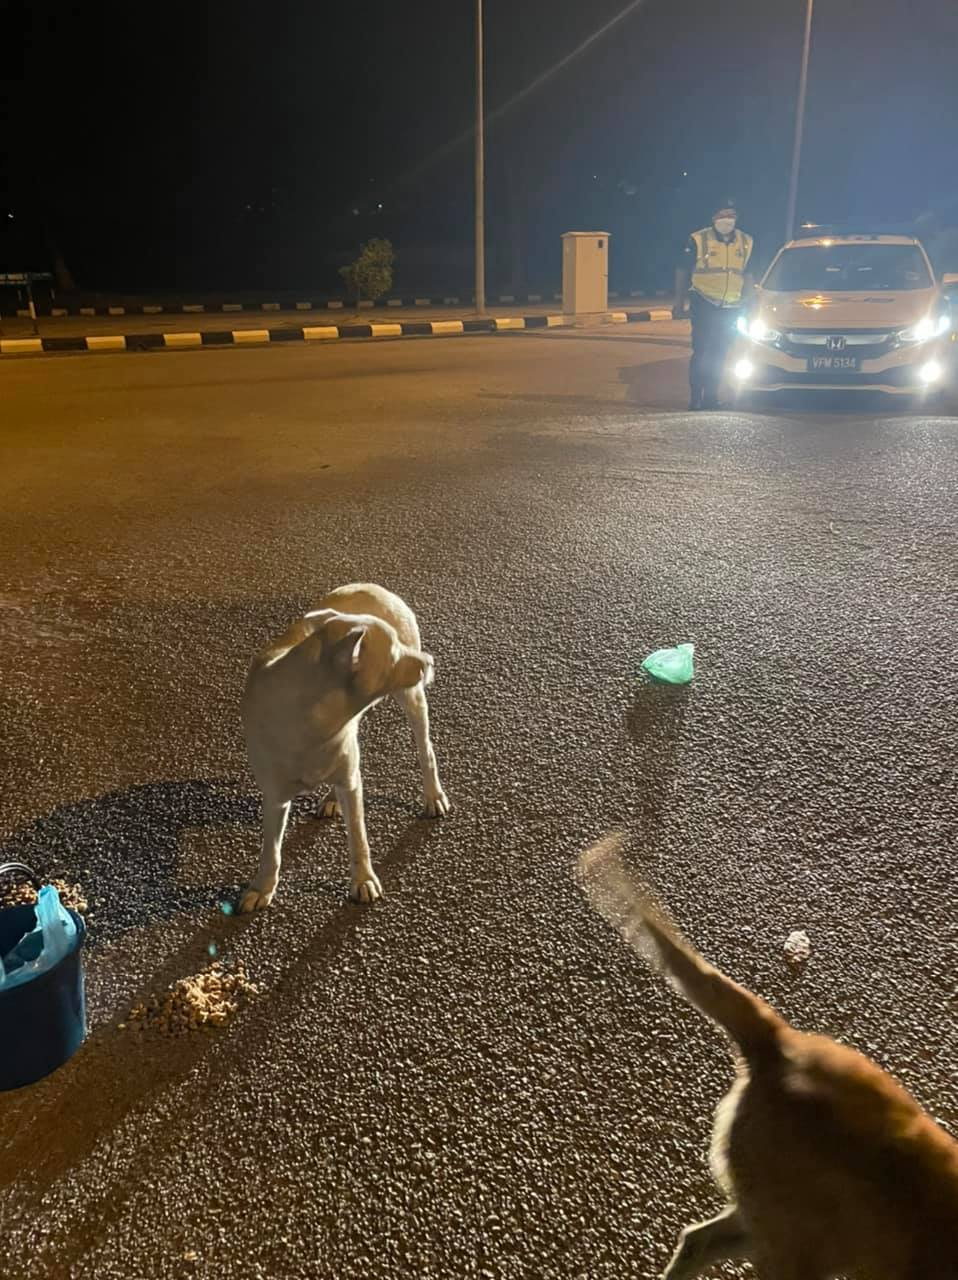 Woman feeding stray dogs gets the attention of police who teman her - feed